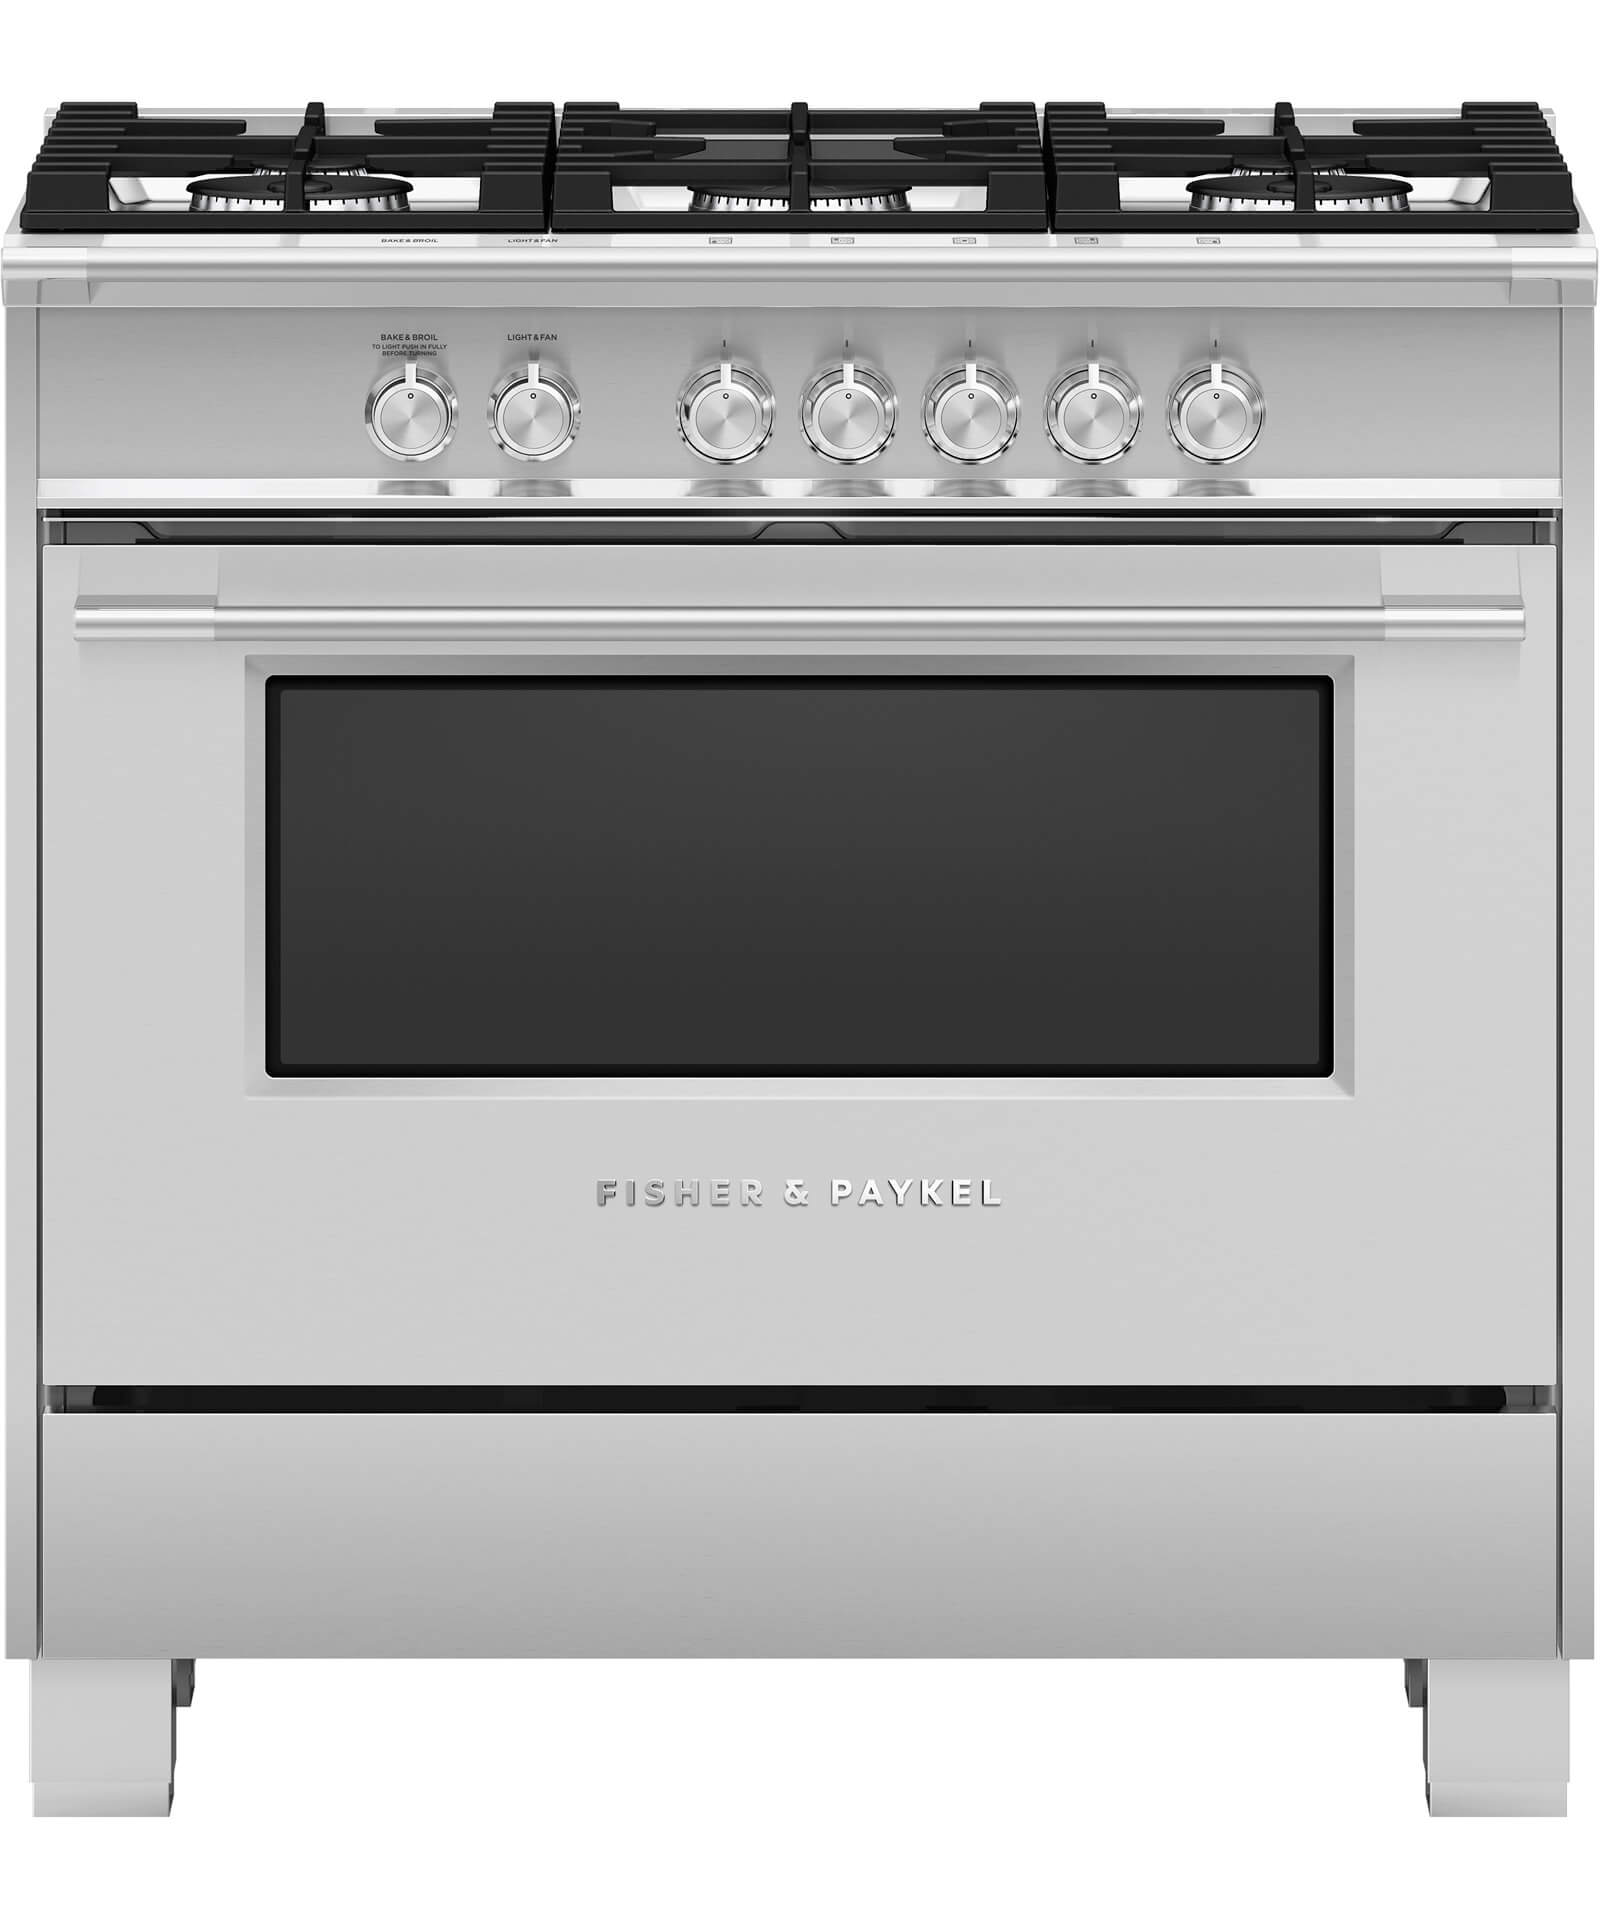 hight resolution of or36scg4x1 36 gas range 81301